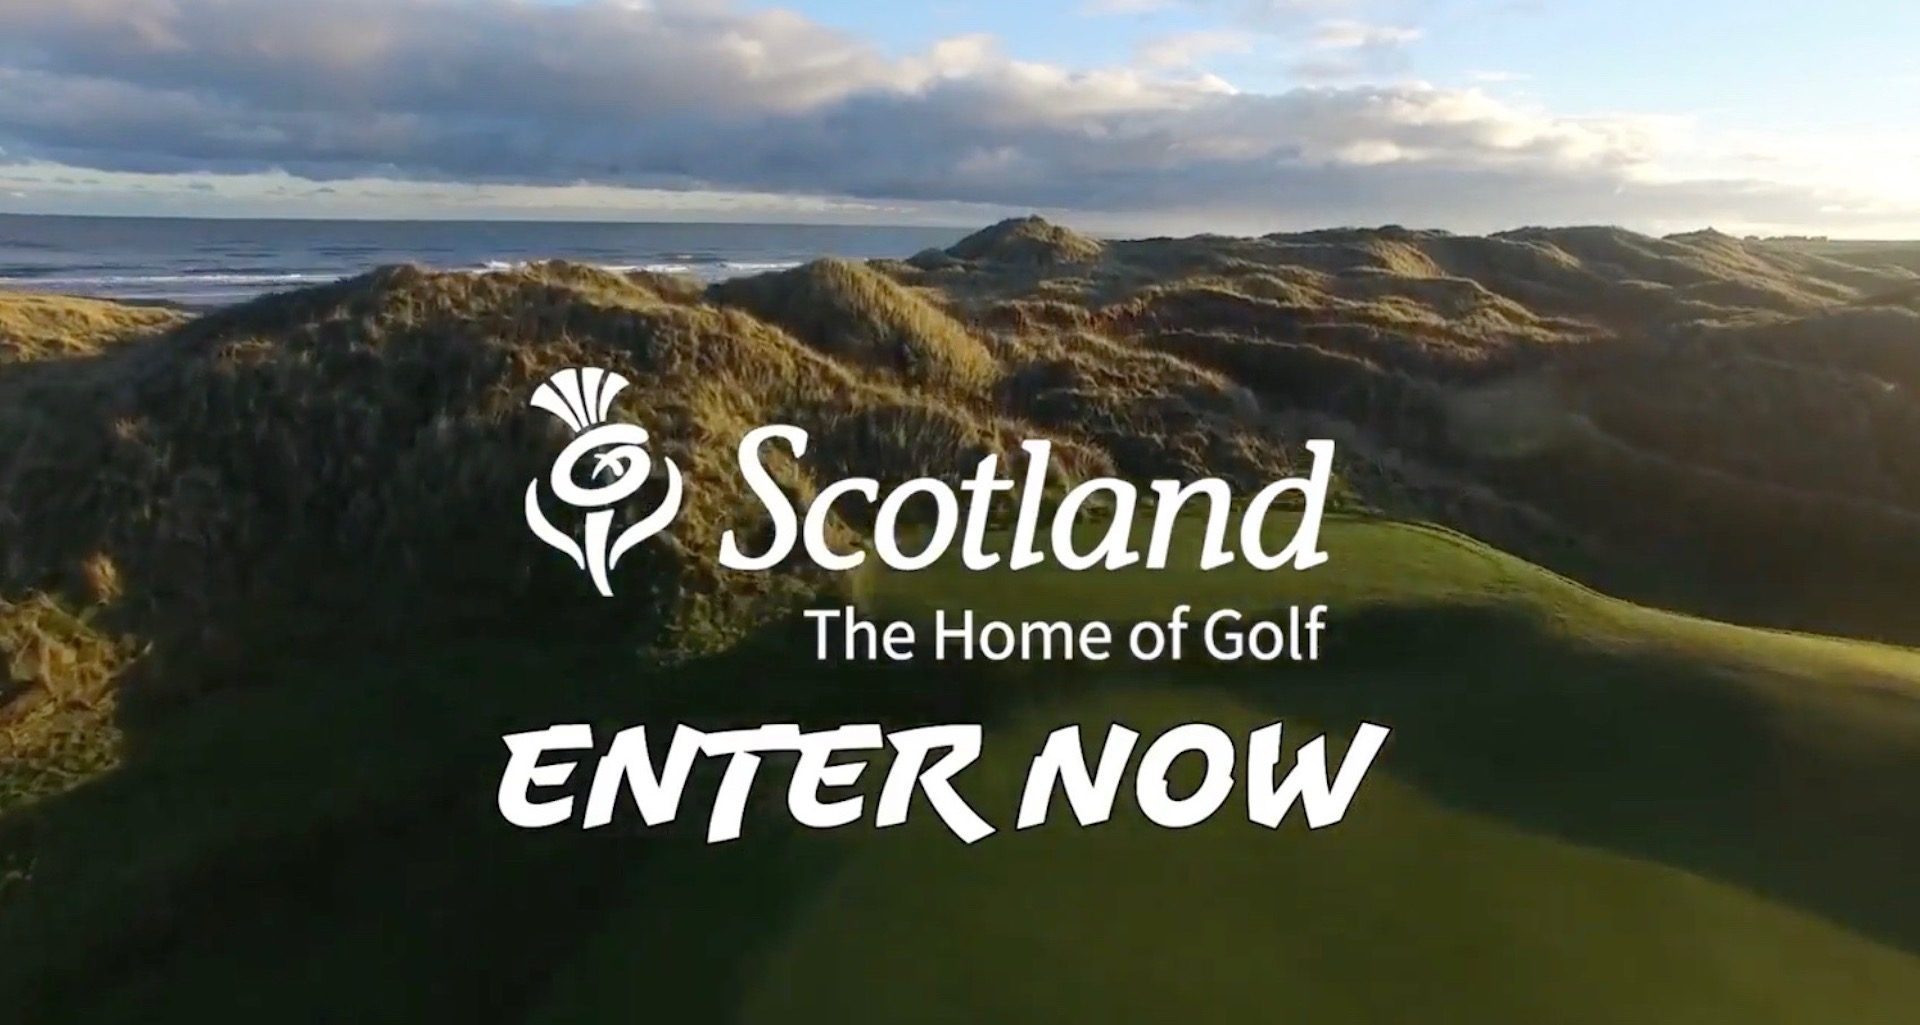 Do you want the Best Golf 'Job' in the World?